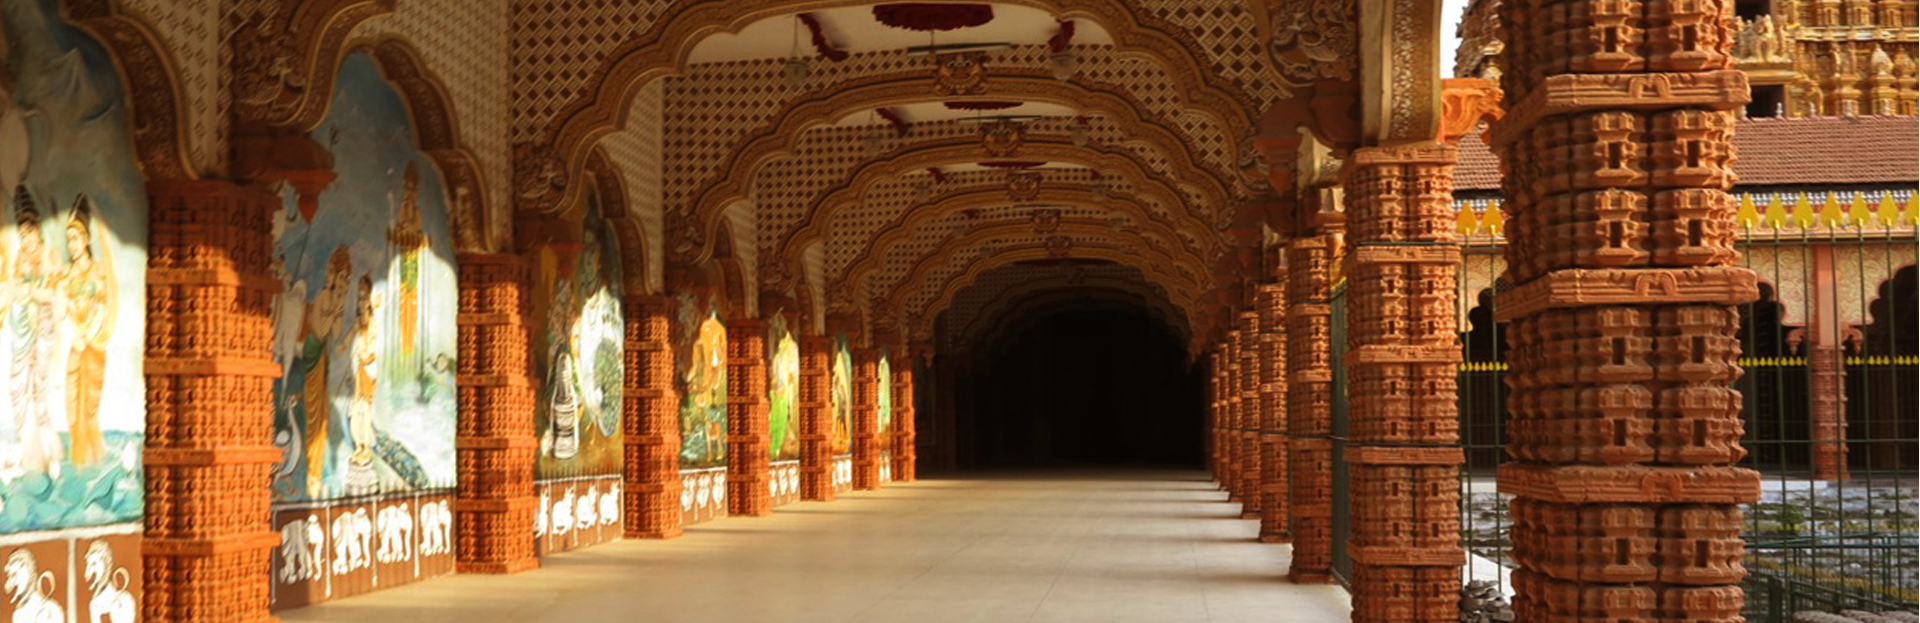 Cankili Thoppu Archway Jaffna, tourty | happiness sorted - tours and activities the easy way!